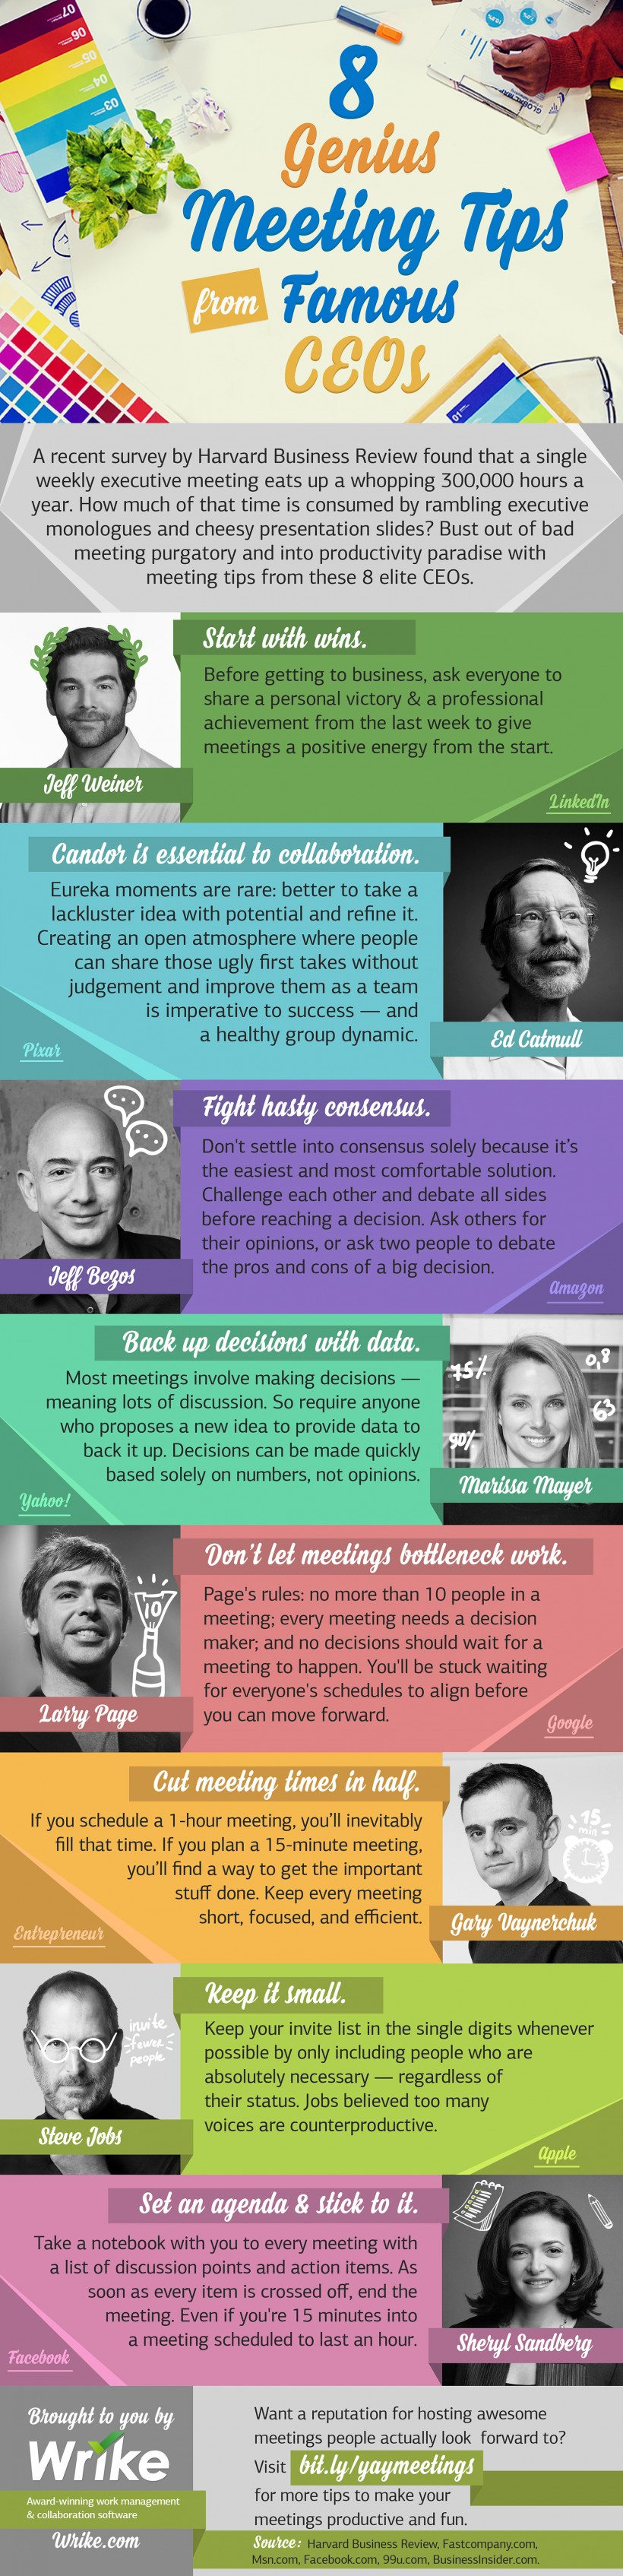 How Pixar, Google, and Facebook Fight Bad Meetings (#Infographic)